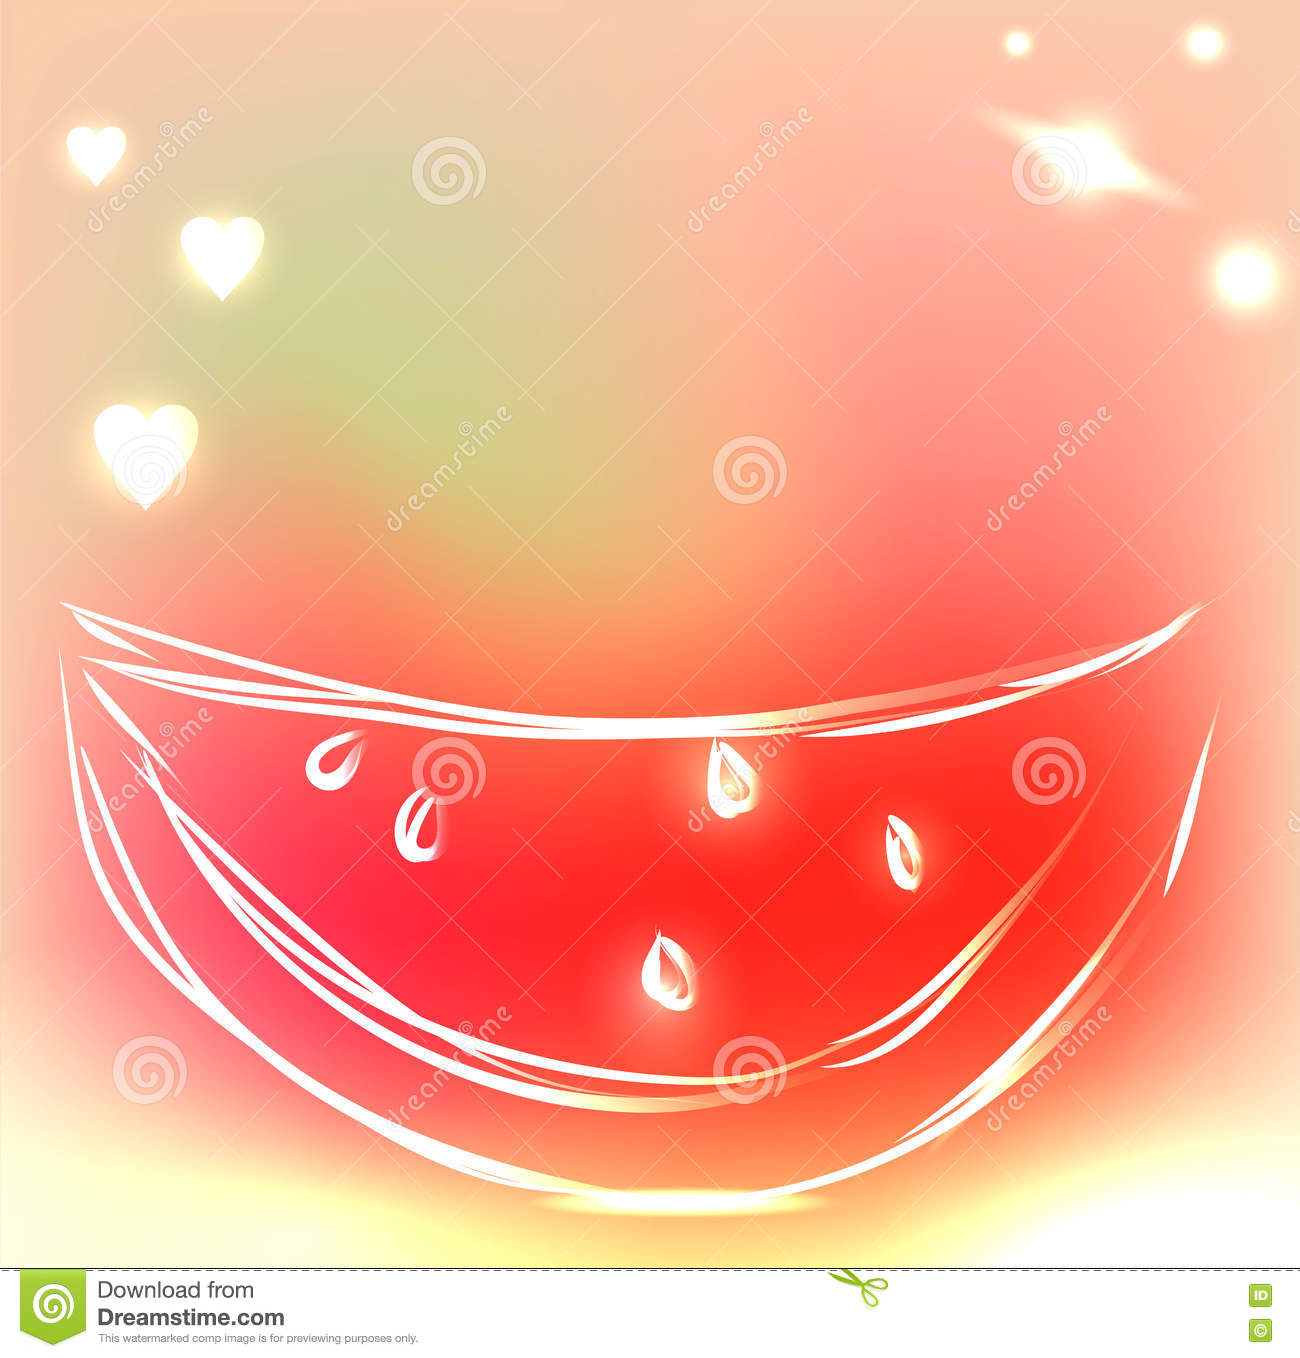 Ice Cream Background Sparking Shiny Decoration Free Vector: Background With Cute Watermelon In Beautiful Colors